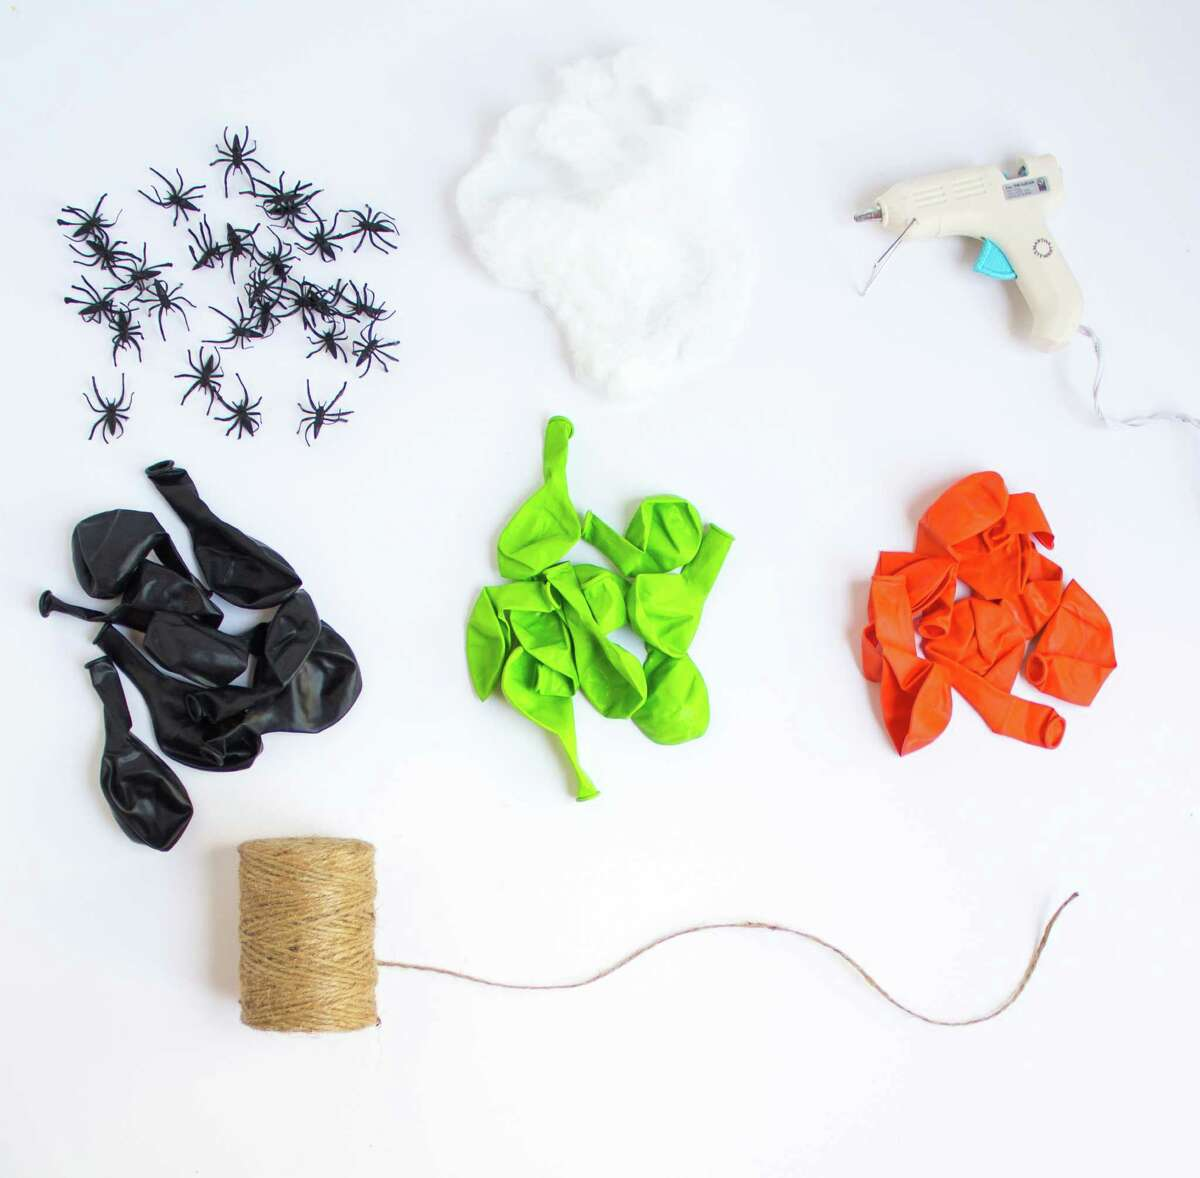 Materials 9- or 12-inch latex balloons in orange, black, and lime green (1 package of each is enough) Jute twine or string Small plastic spiders (you can buy these in a pack of 144 from OrientalTrading.com) Faux spiderweb Hot glue gun